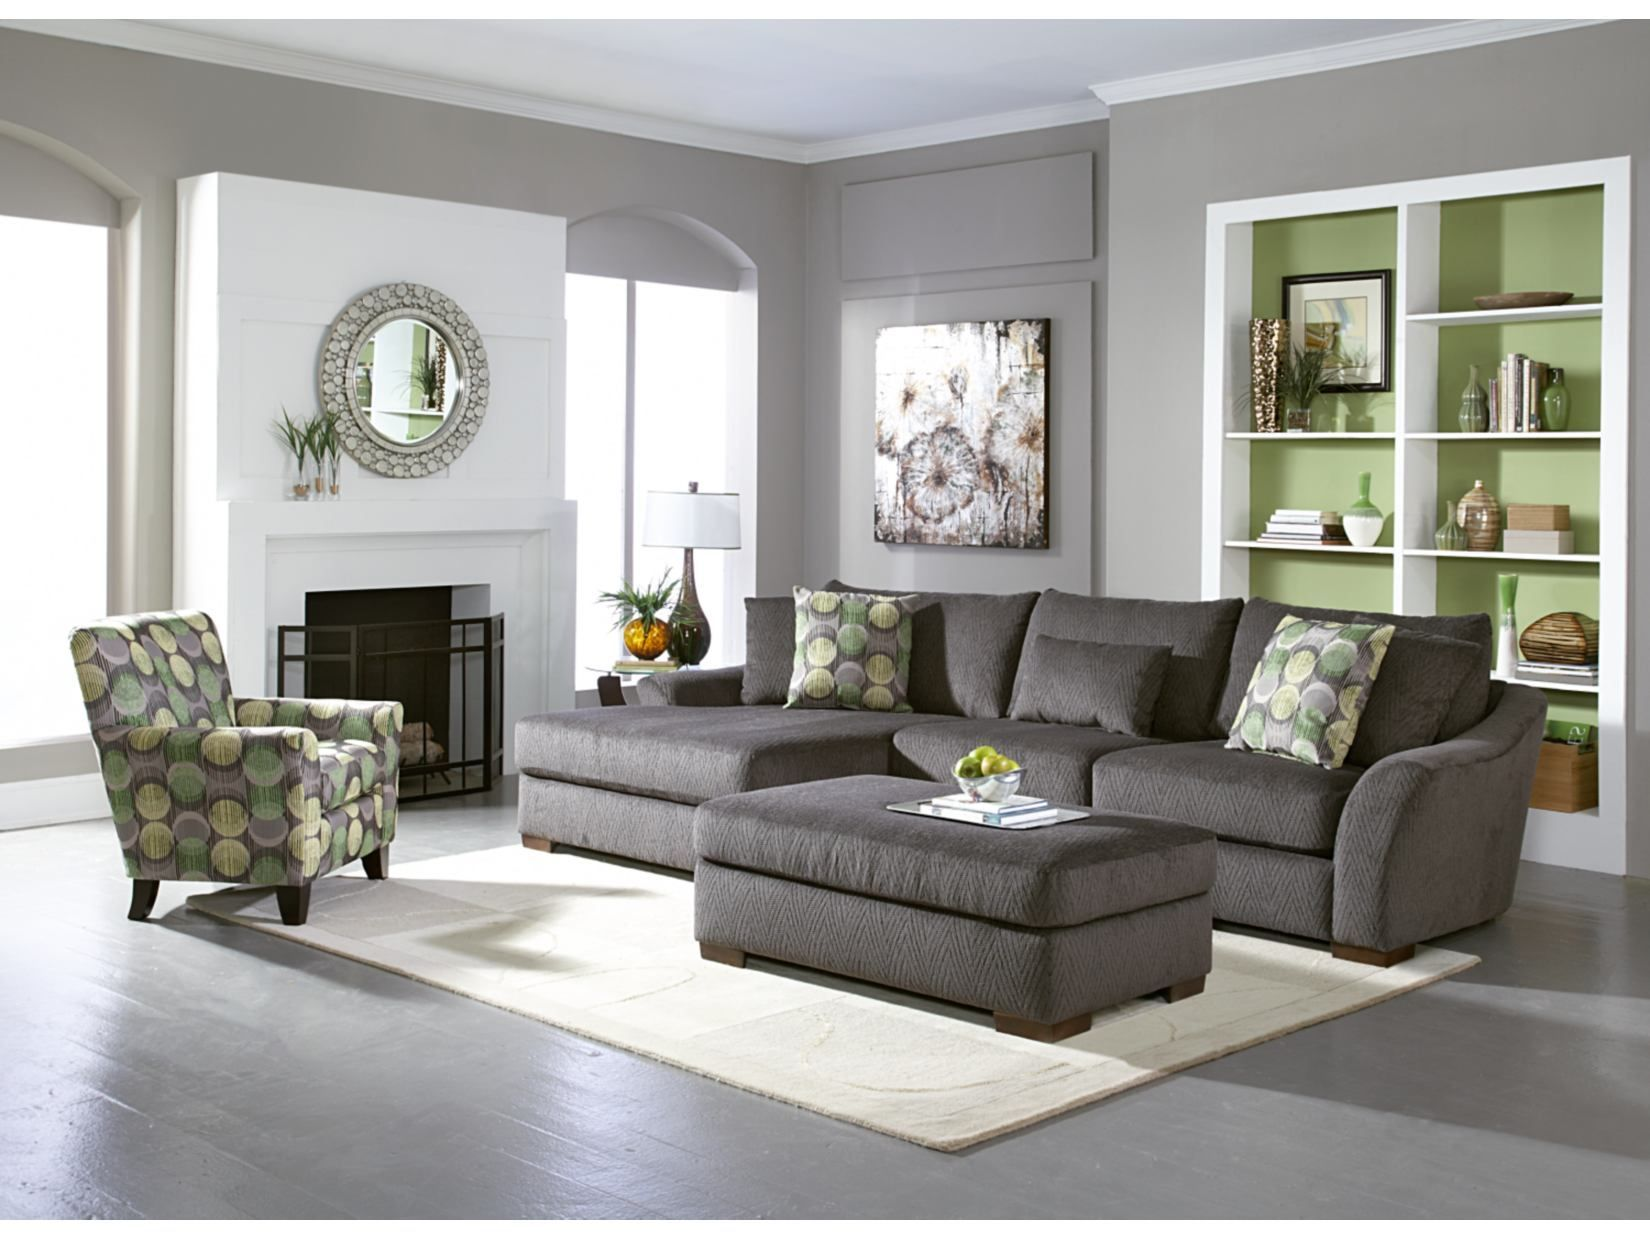 11 Smart Designs Of How To Make 3 Piece Living Room Set Cheap Living Room Grey Grey Furniture Living Room Grey Sofa Living Room